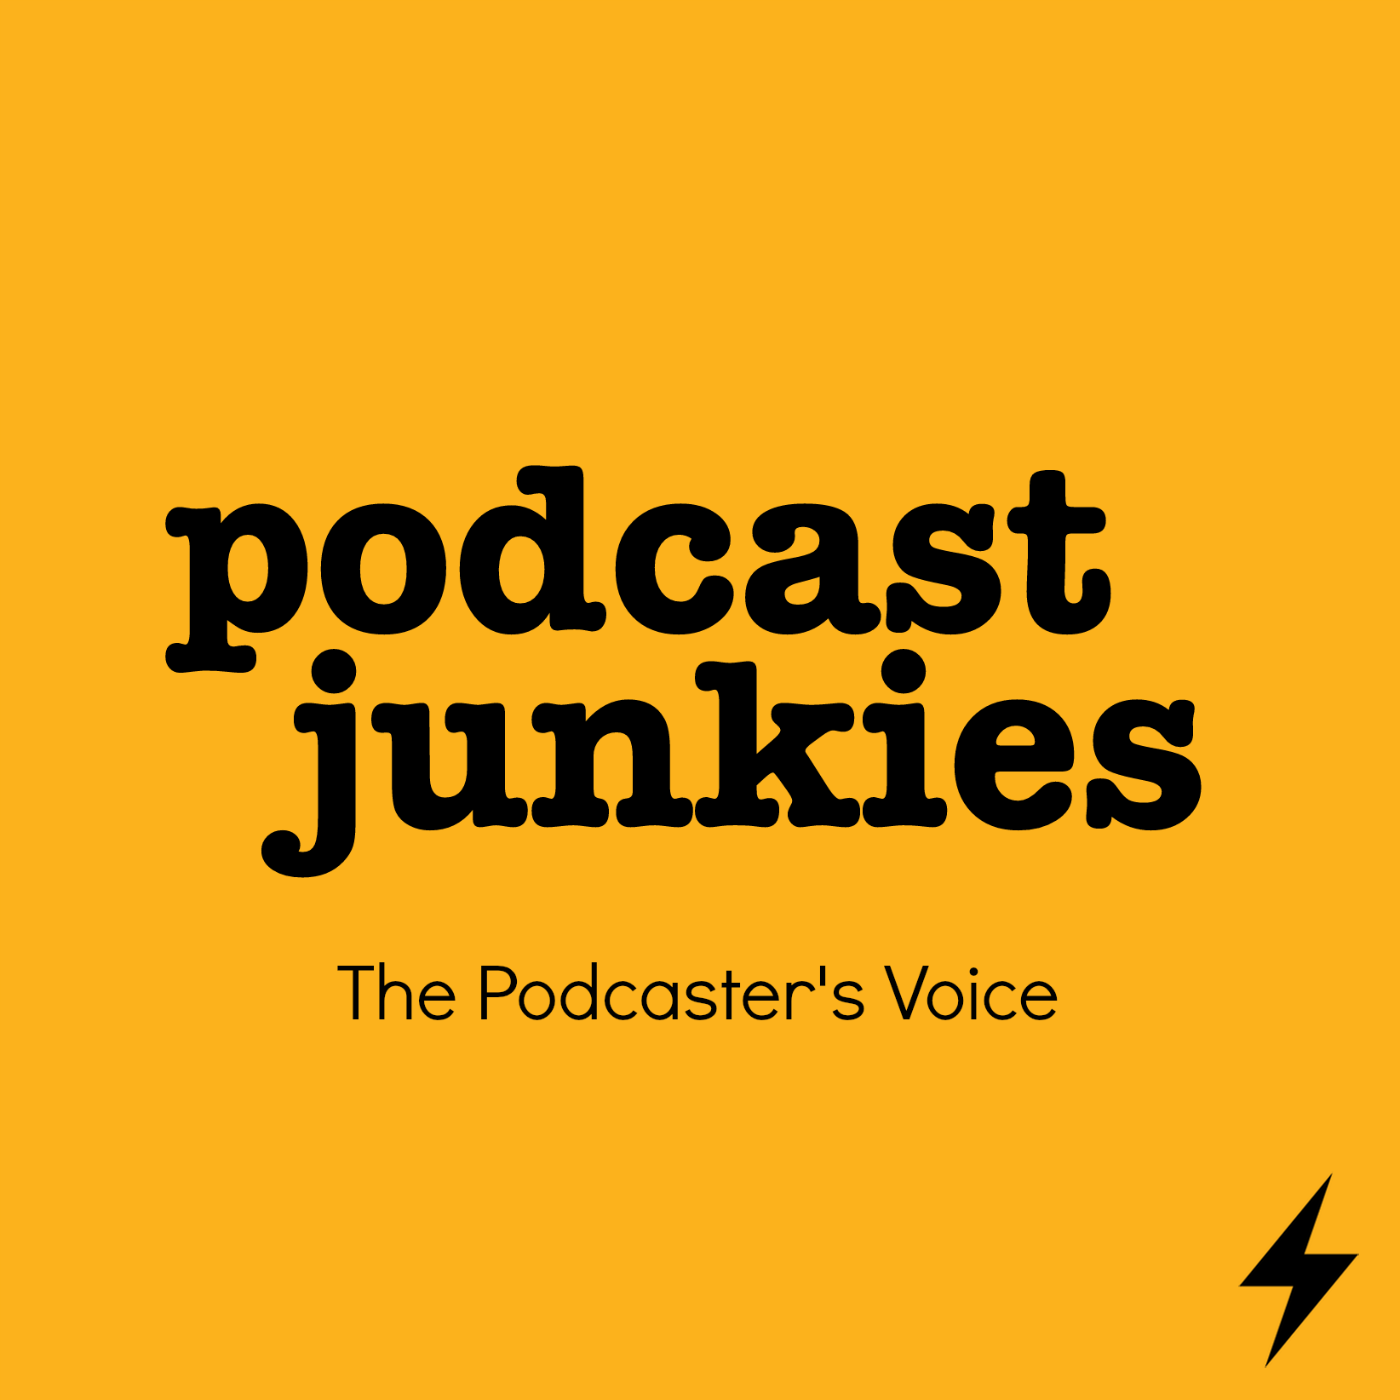 Podcast Junkies: Interviews and Conversations with Inspiring, Motivational Storytelling Podcasters, Entrepreneurs